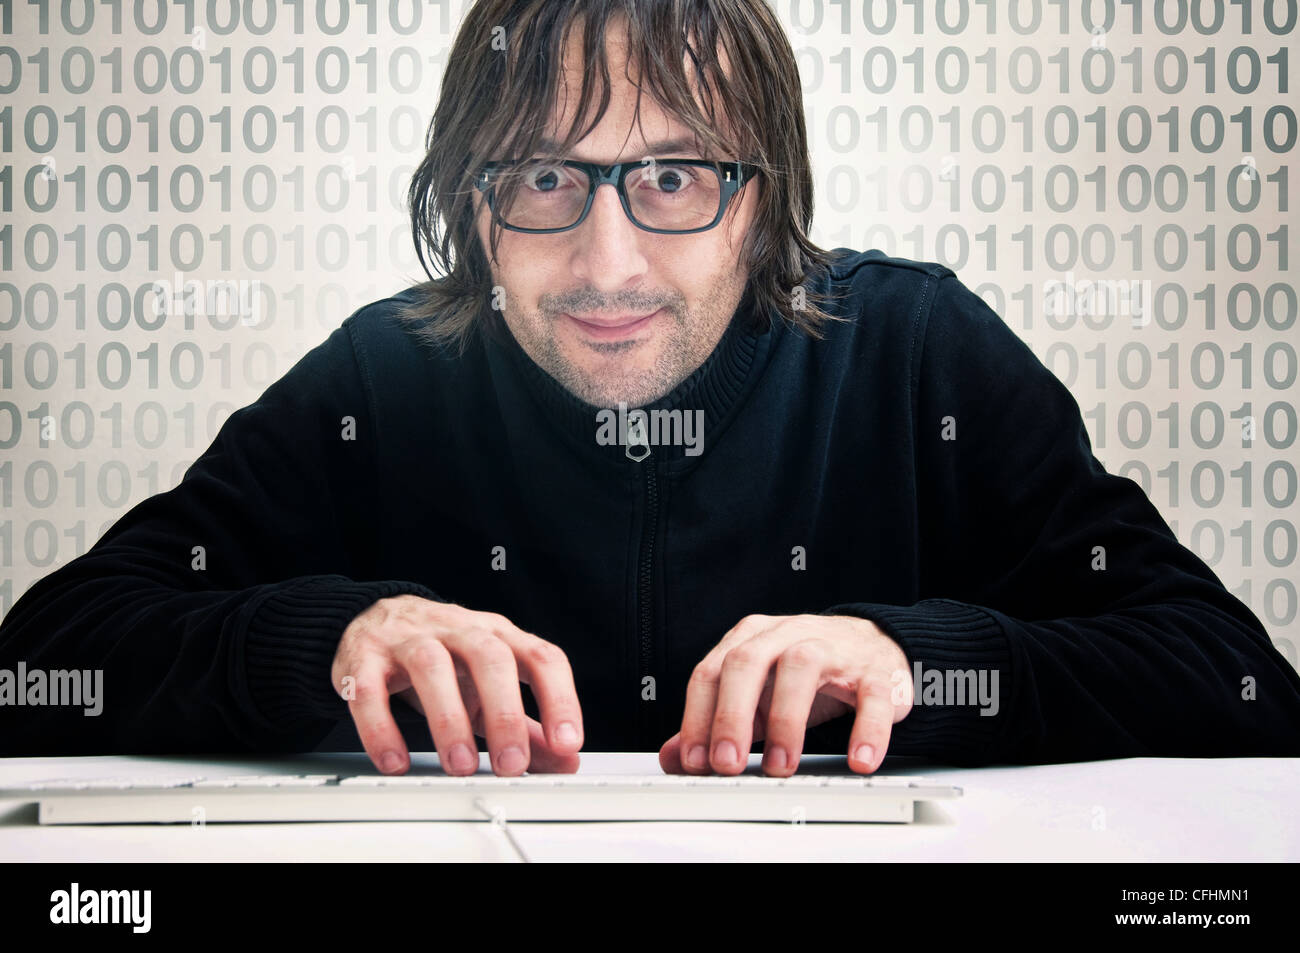 Man is typing on computer keyboard, computer hacker concept - Stock Image